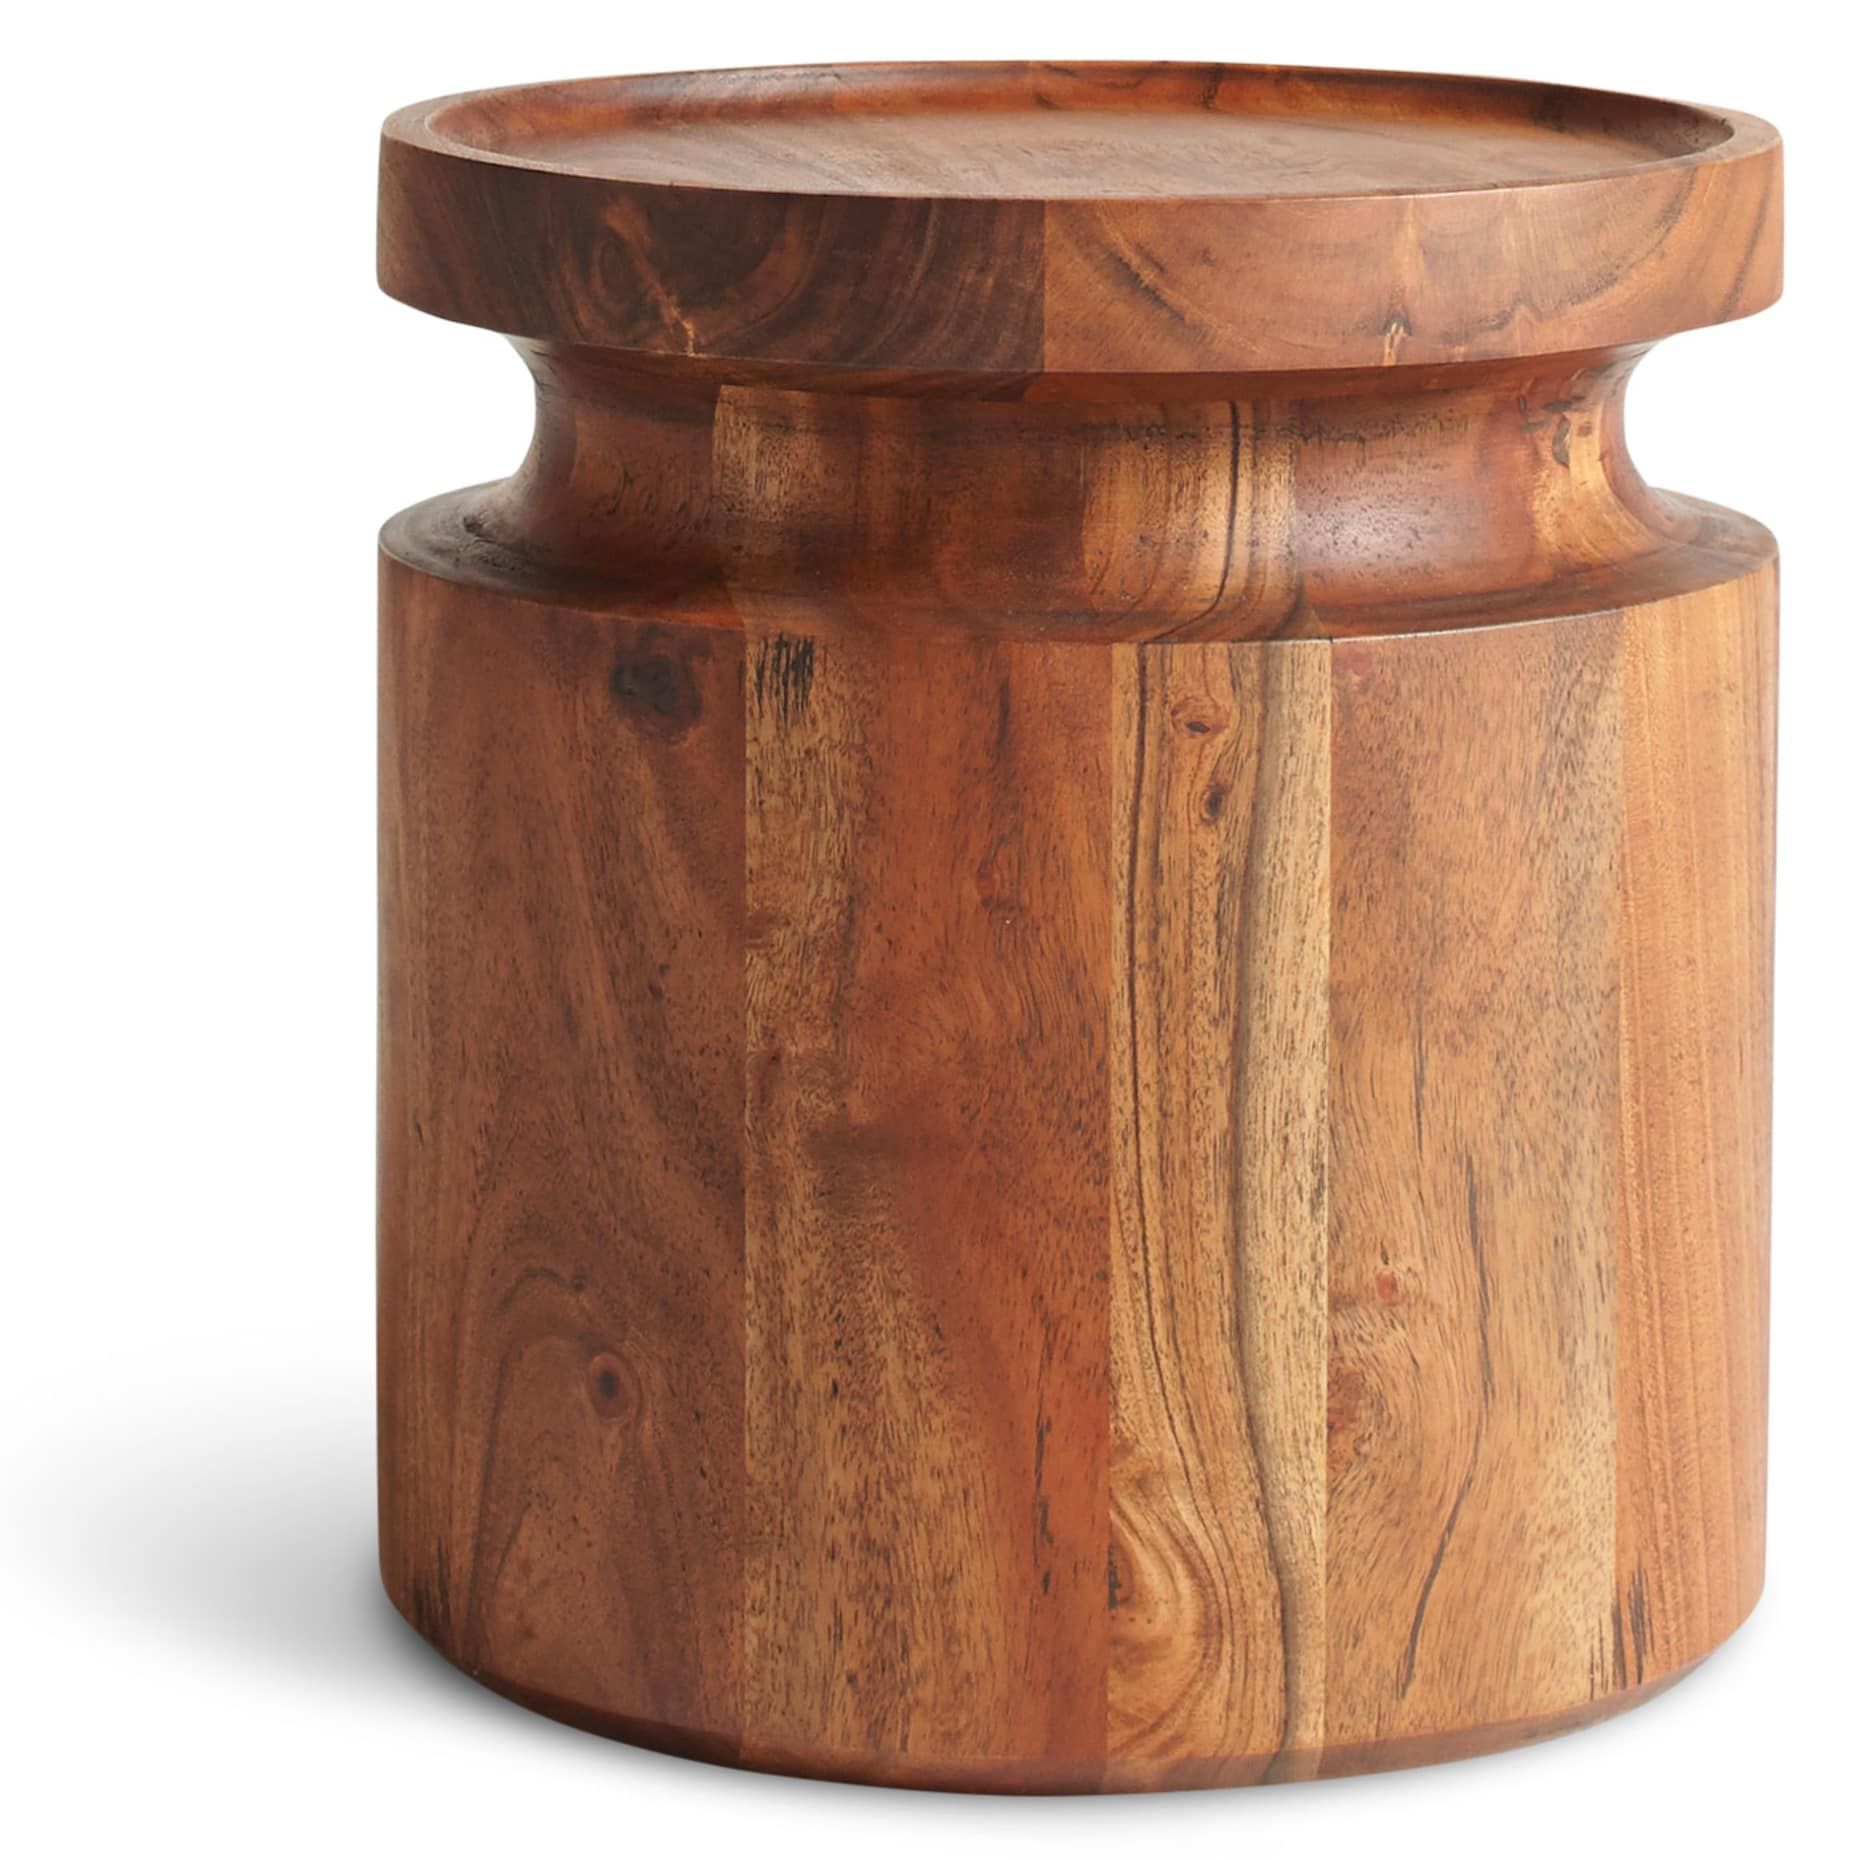 Turn Low Side Table Side Table Wood Solid Wood Side Table Side Table